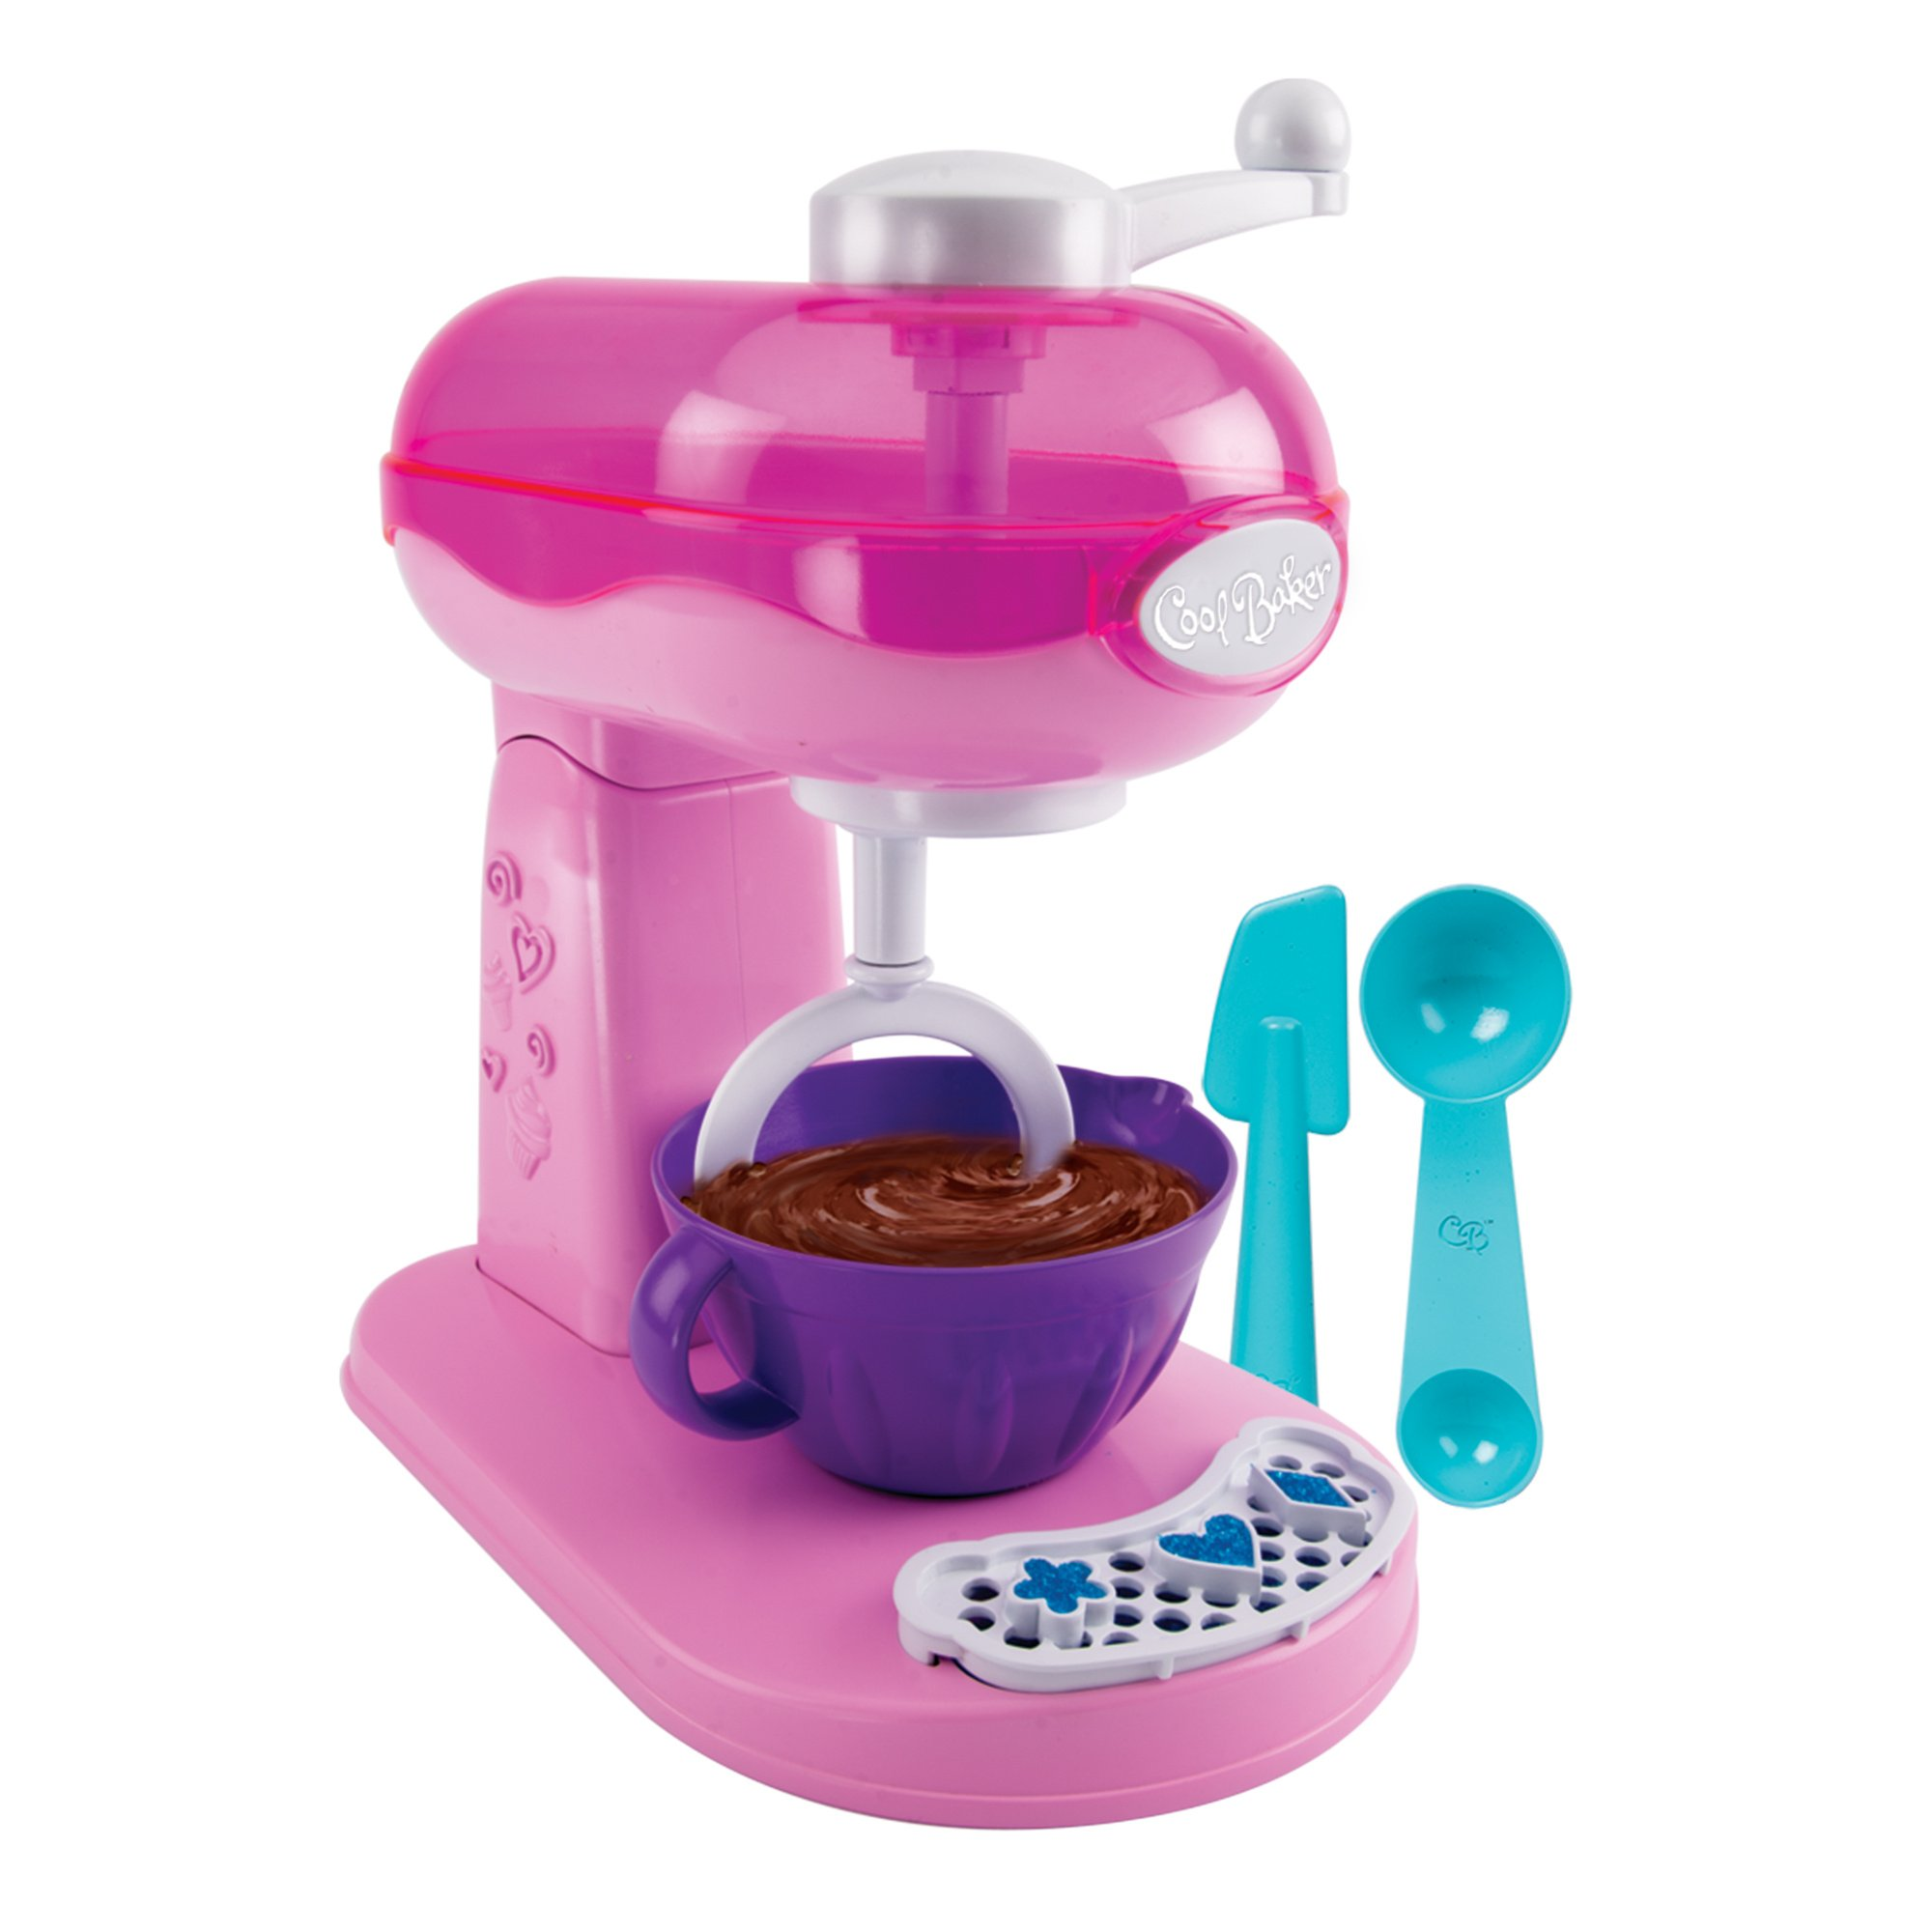 Cool Baker Magic Mixer Maker - Pink by Cool Baker (Image #6)